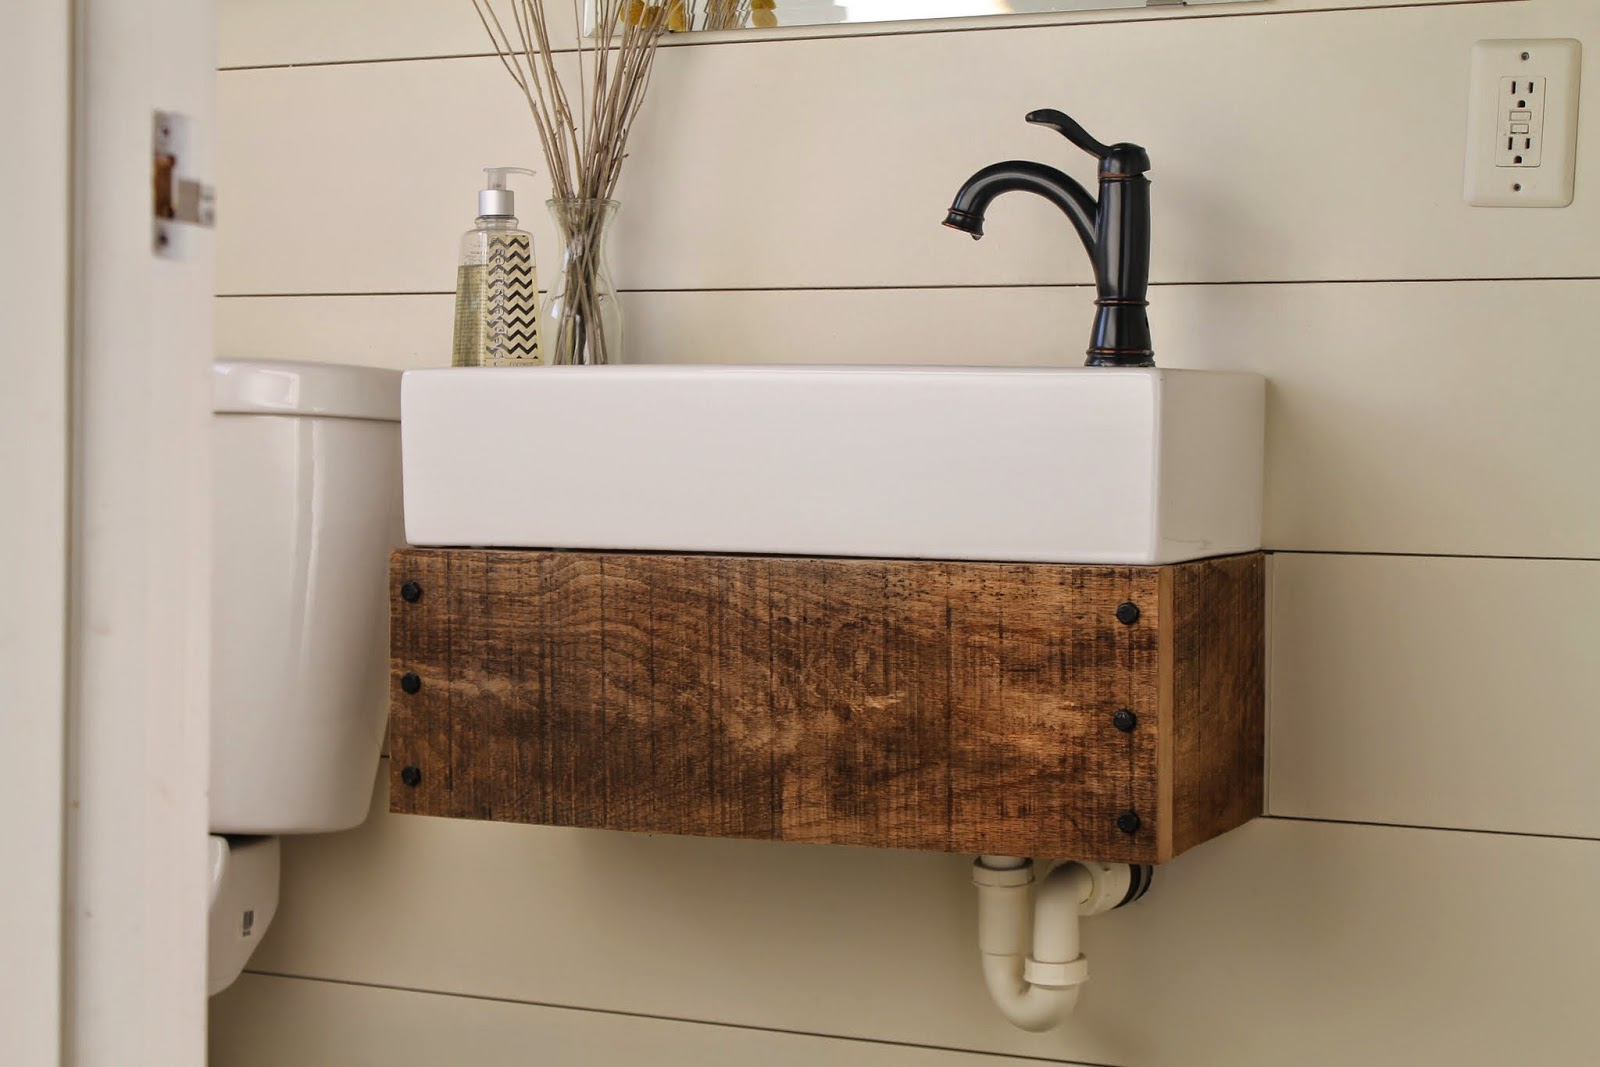 Diy bathroom vanity plans - Diy Floating Reclaimed Wood Vanity With Sink Girl Meets Carpenter Featured On Remodelaholic